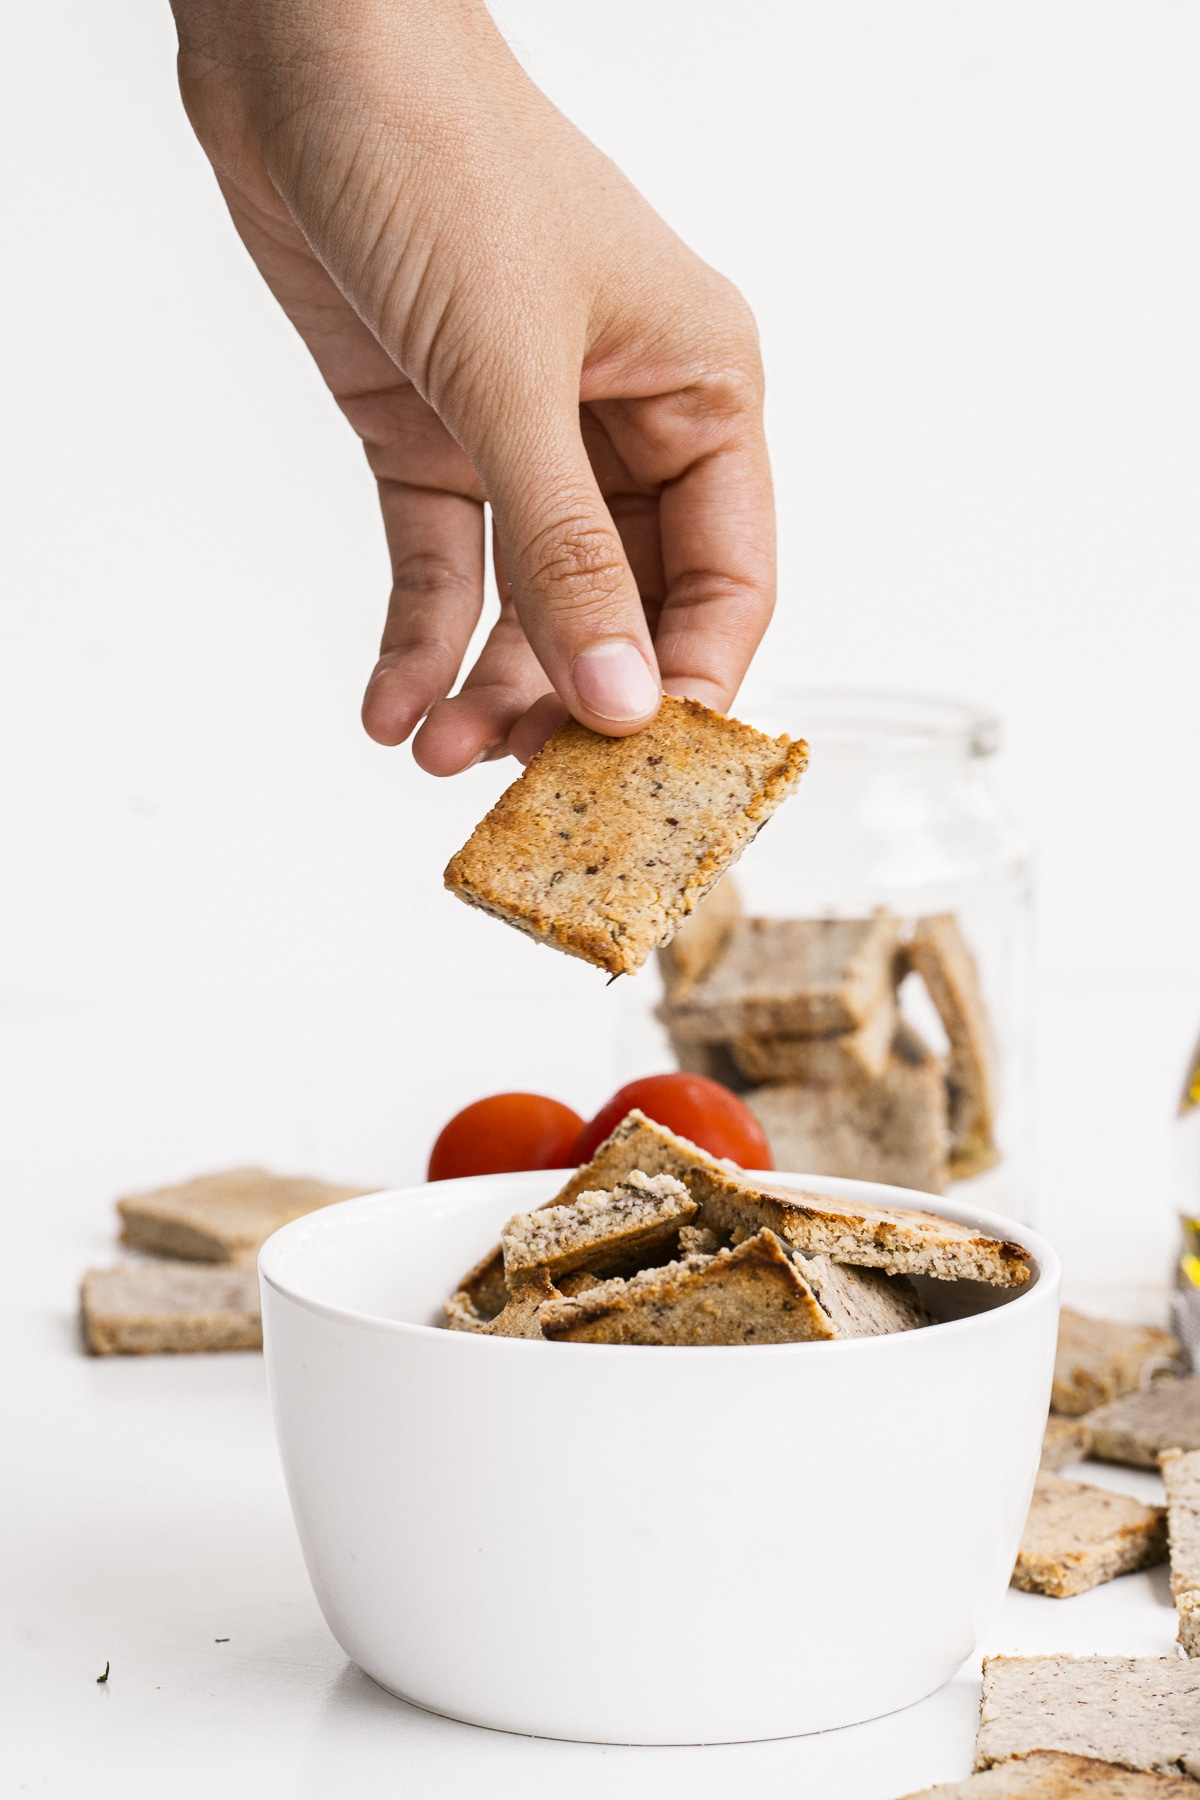 Simple to make, light and crunchy, these Cheesy Almond Flour Crackers make the perfect low carb snack!